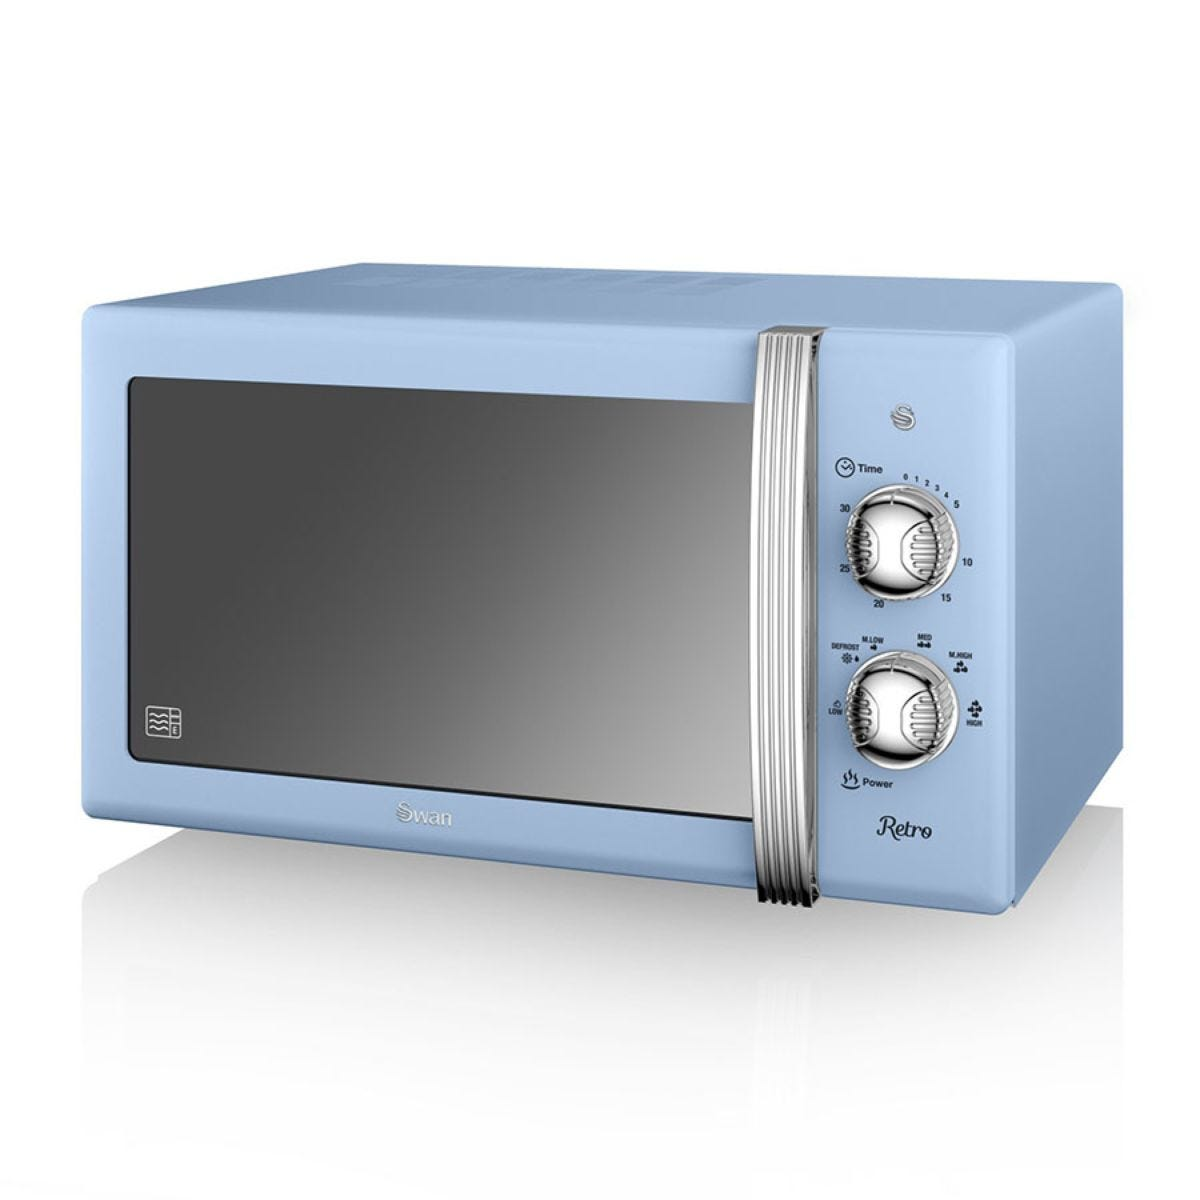 Swan Retro SM22130BLN 800W 20L Manual Solo Microwave - Blue